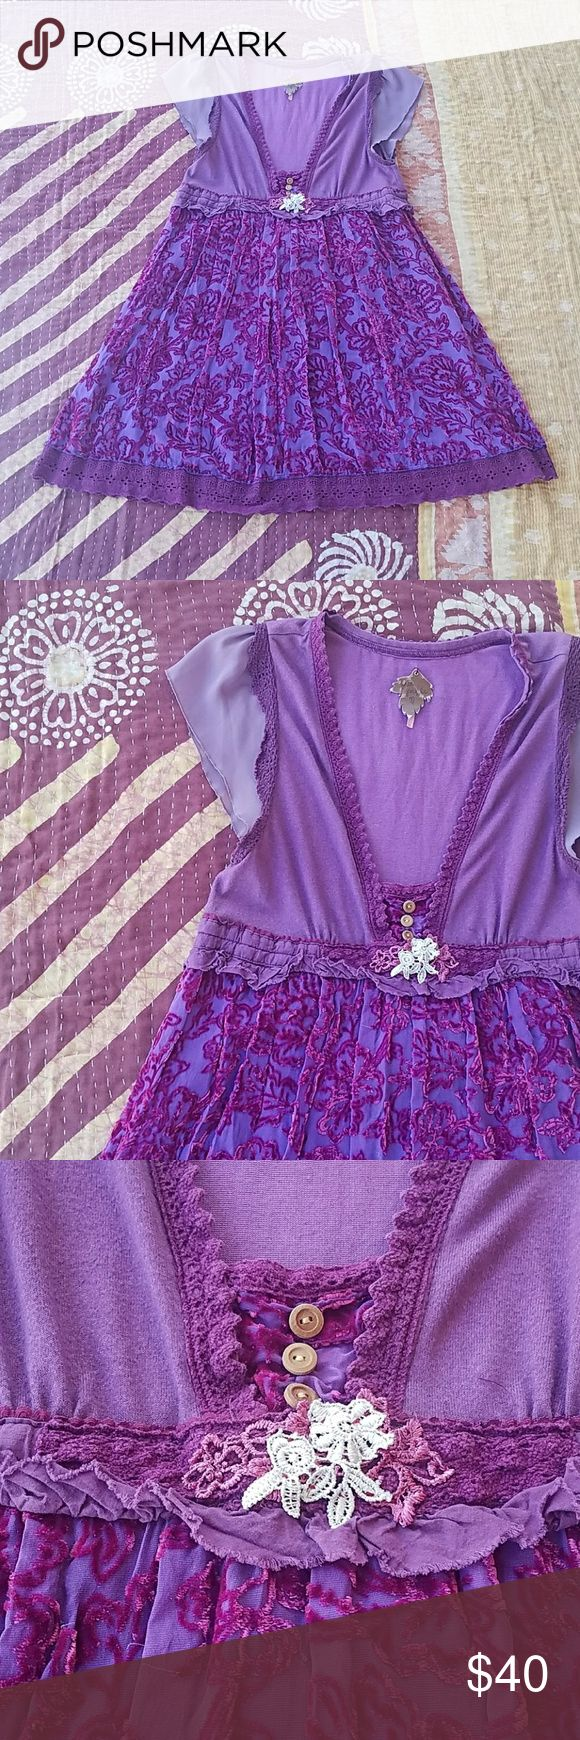 Free People Purple Floral Velvet Festival Dress 8 Burnout velvet dress in floral print  Soft jersey cotton bodice Sheer cap sleeves Ruffle trim with crochet and button details at bustline Crochet trim hem on a-line skirt Made by Free People, Size 8 Some slight fuzziness on cotton but is very minimal In otherwise good condition Free People Dresses Mini